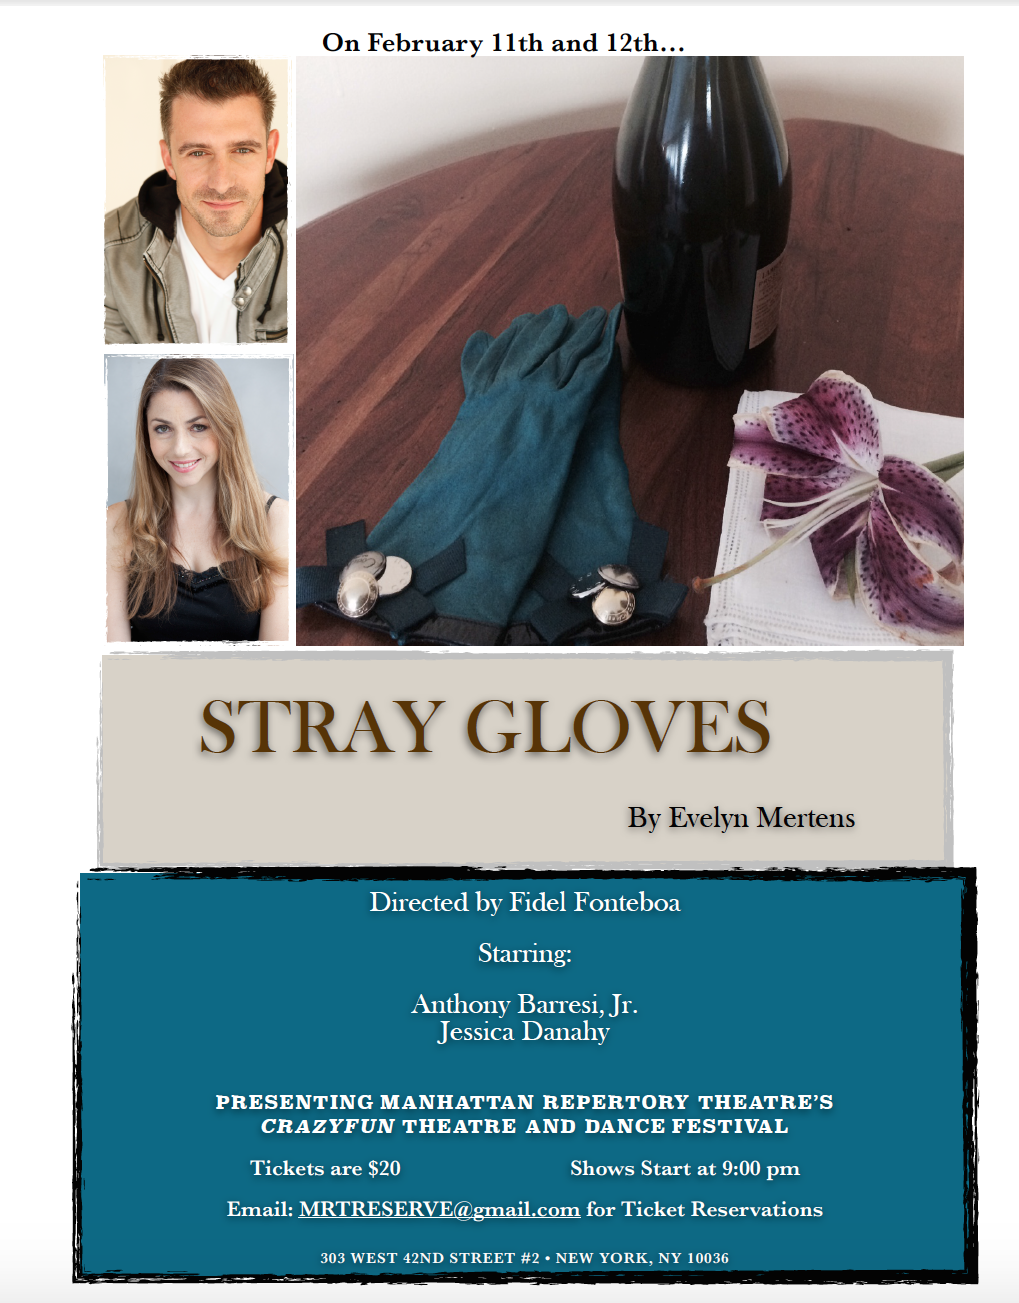 Stray Gloves jpeg.jpg